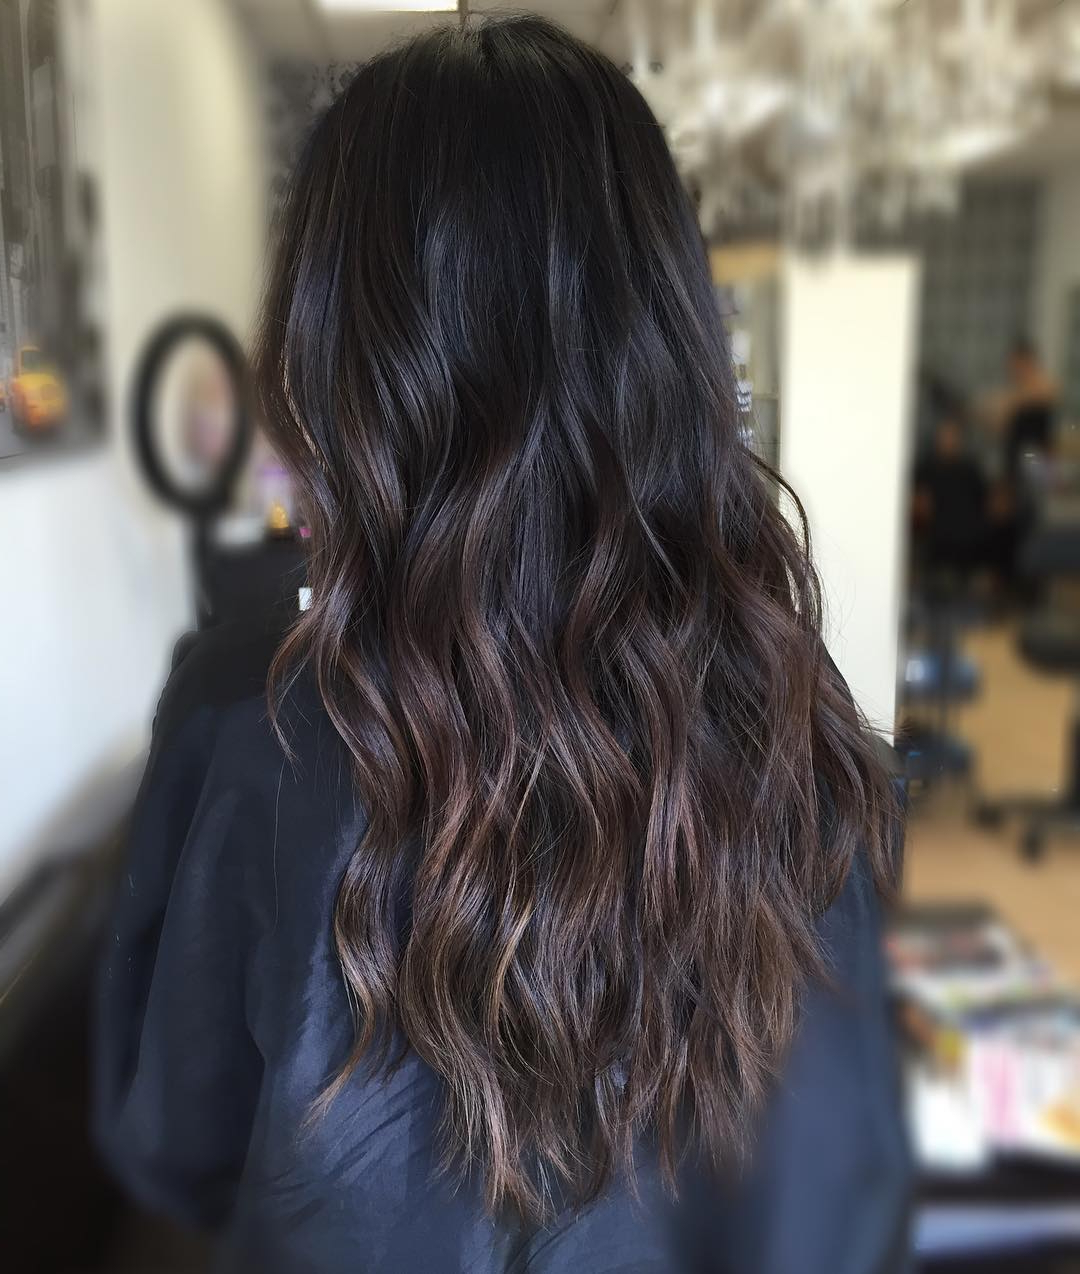 35 Dark Brown Hairstyles With Brown Balayage – Reviewtiful With Regard To Short Brown Balayage Hairstyles (View 2 of 20)